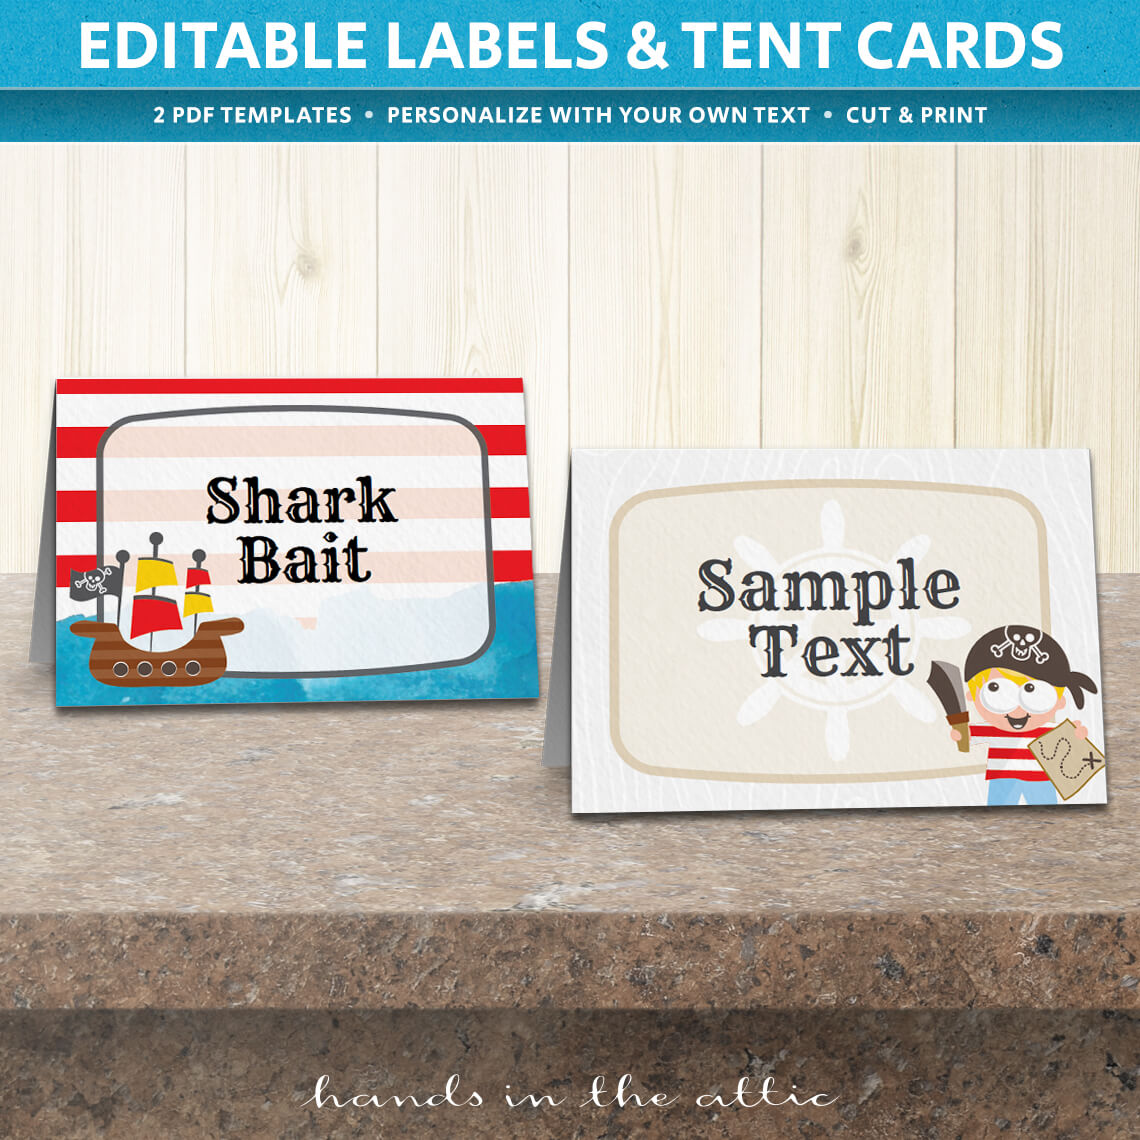 pirate birthday party tent cards template printable stationery